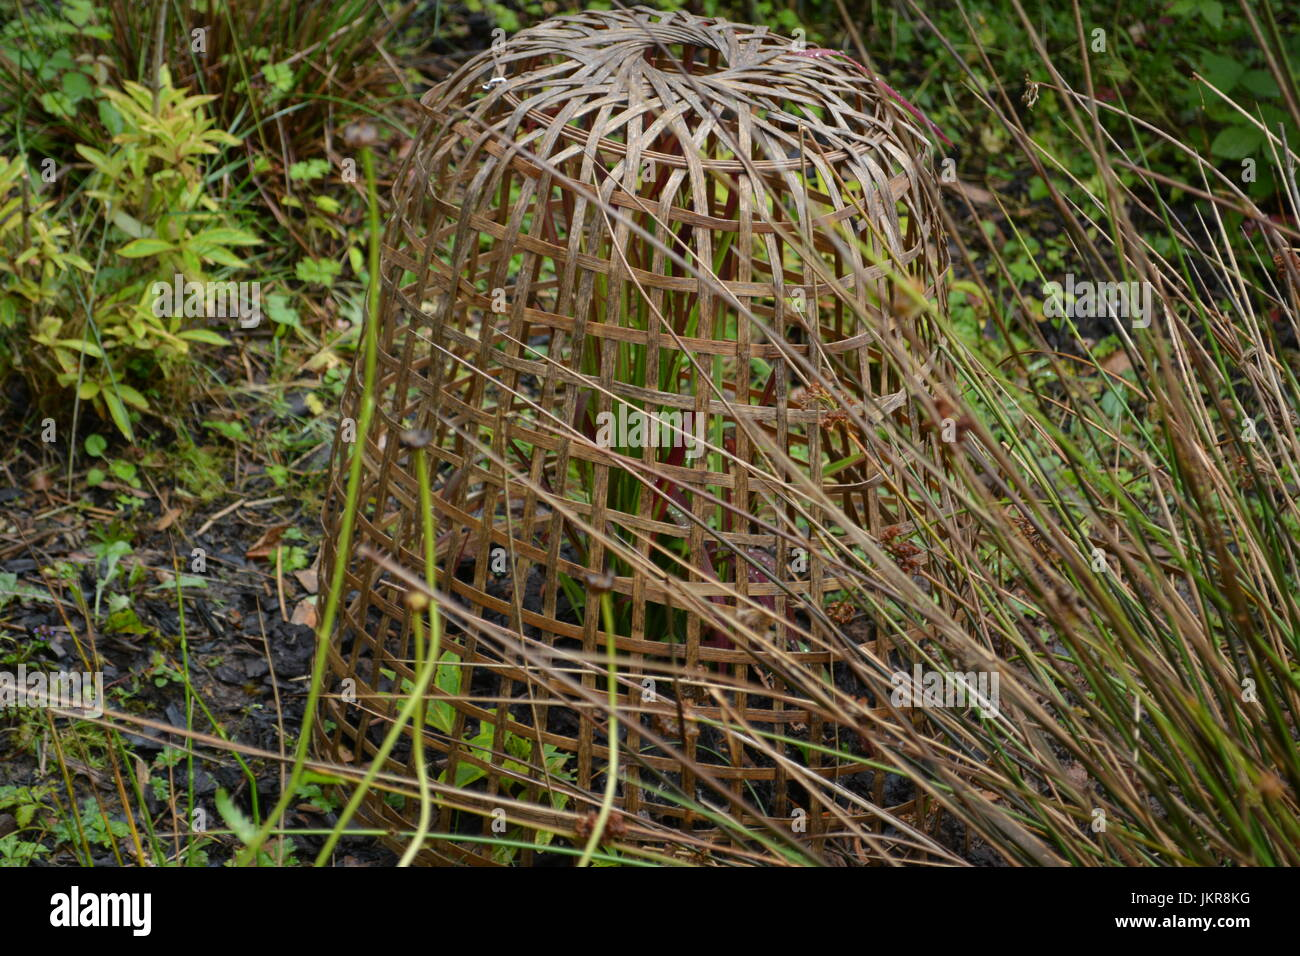 Open weaved domed reed basket protecting planted shrub from foxes deers wildlife in border of established mature Stock Photo